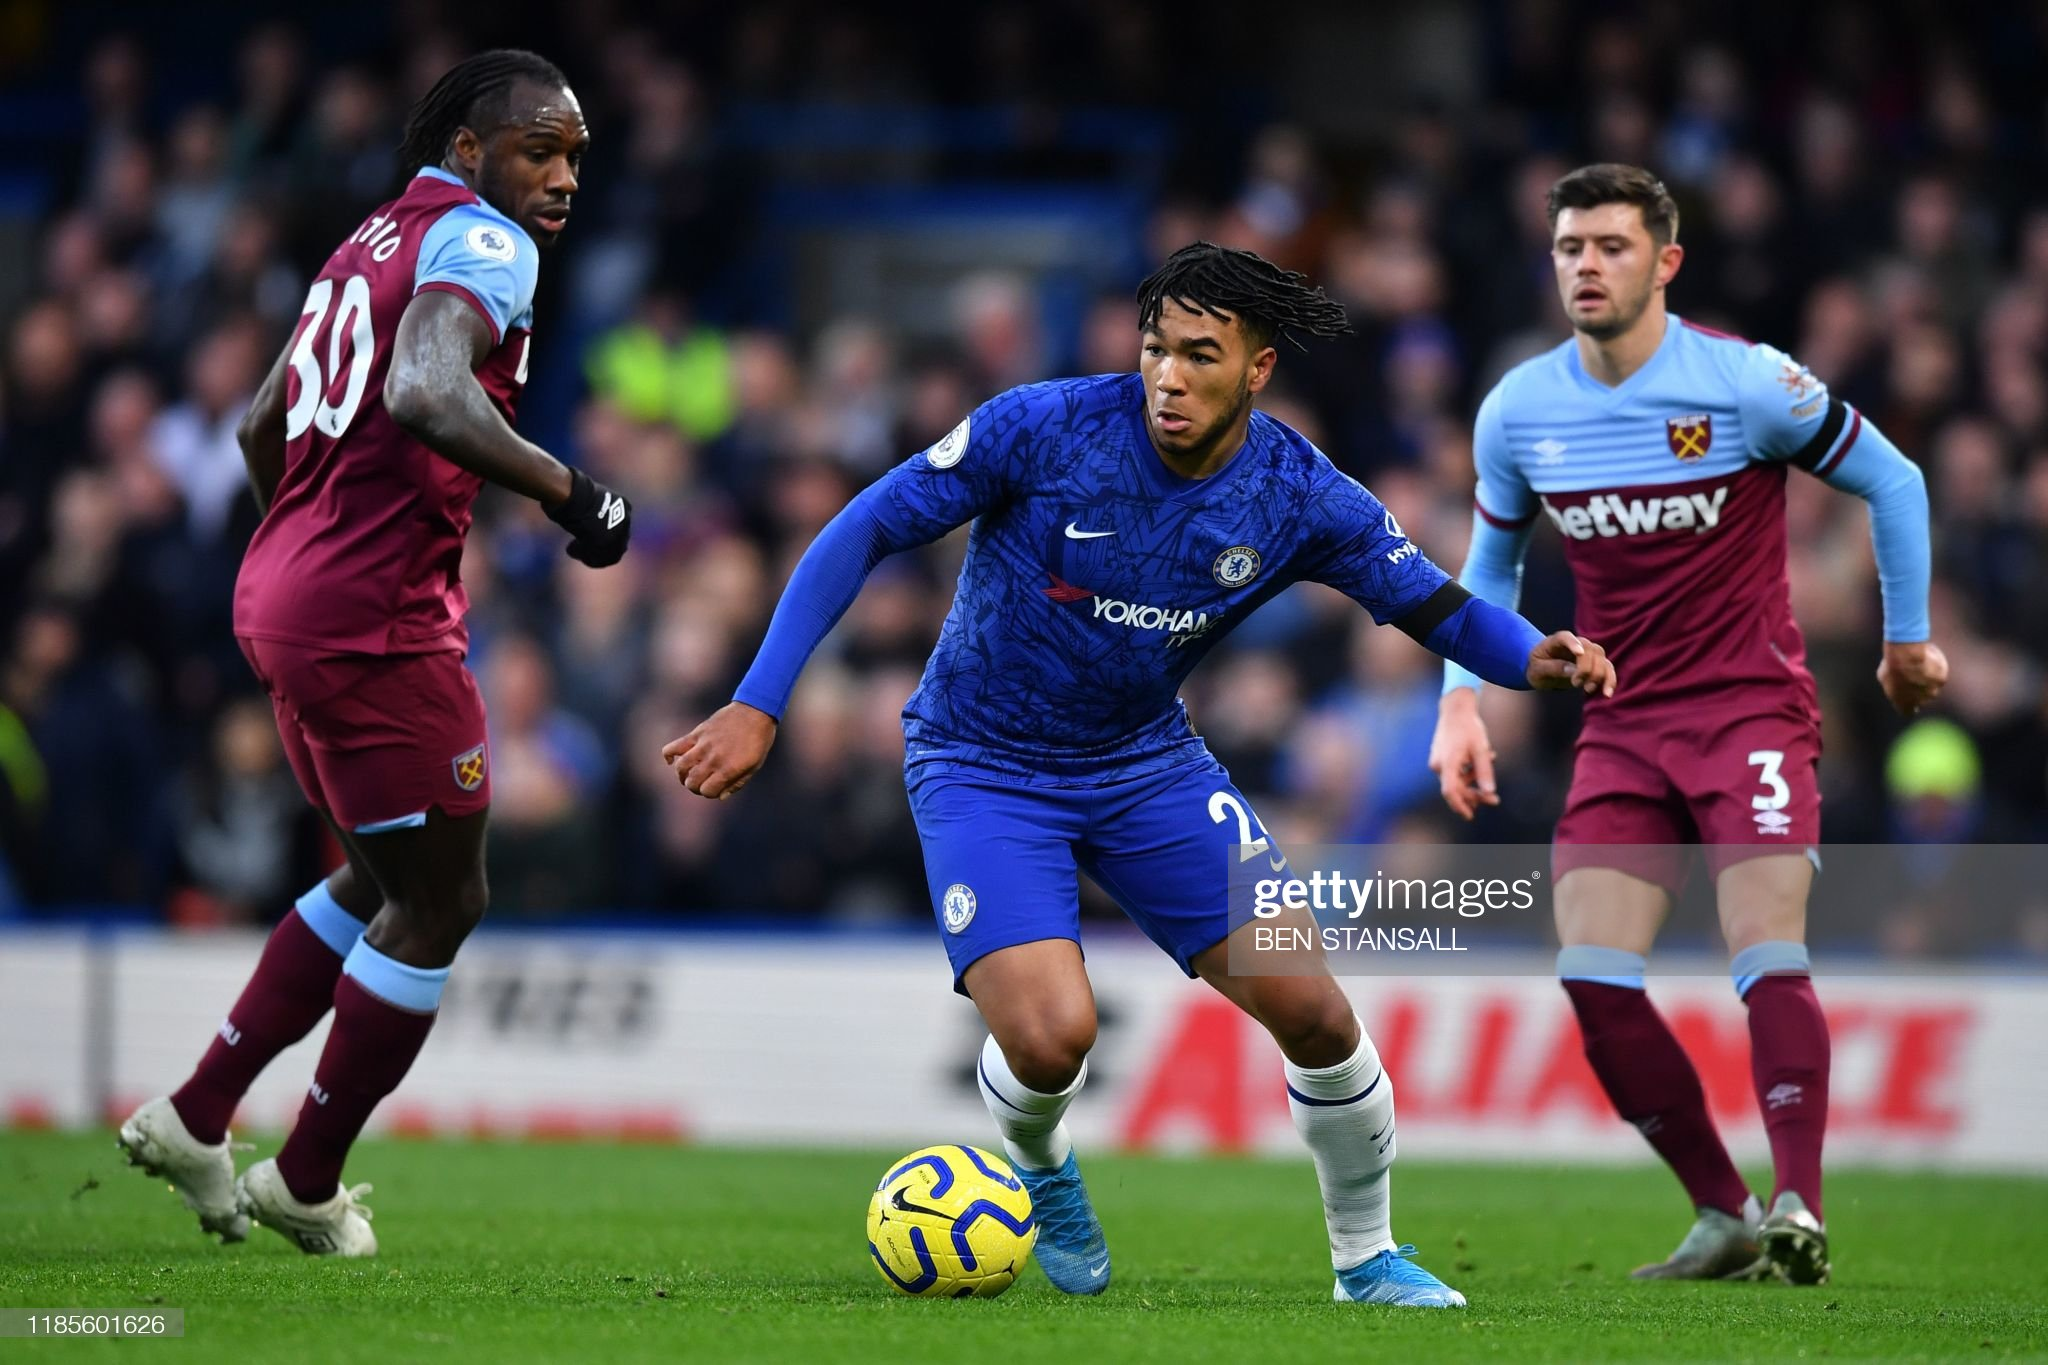 West Ham vs Chelsea preview, prediction and odds